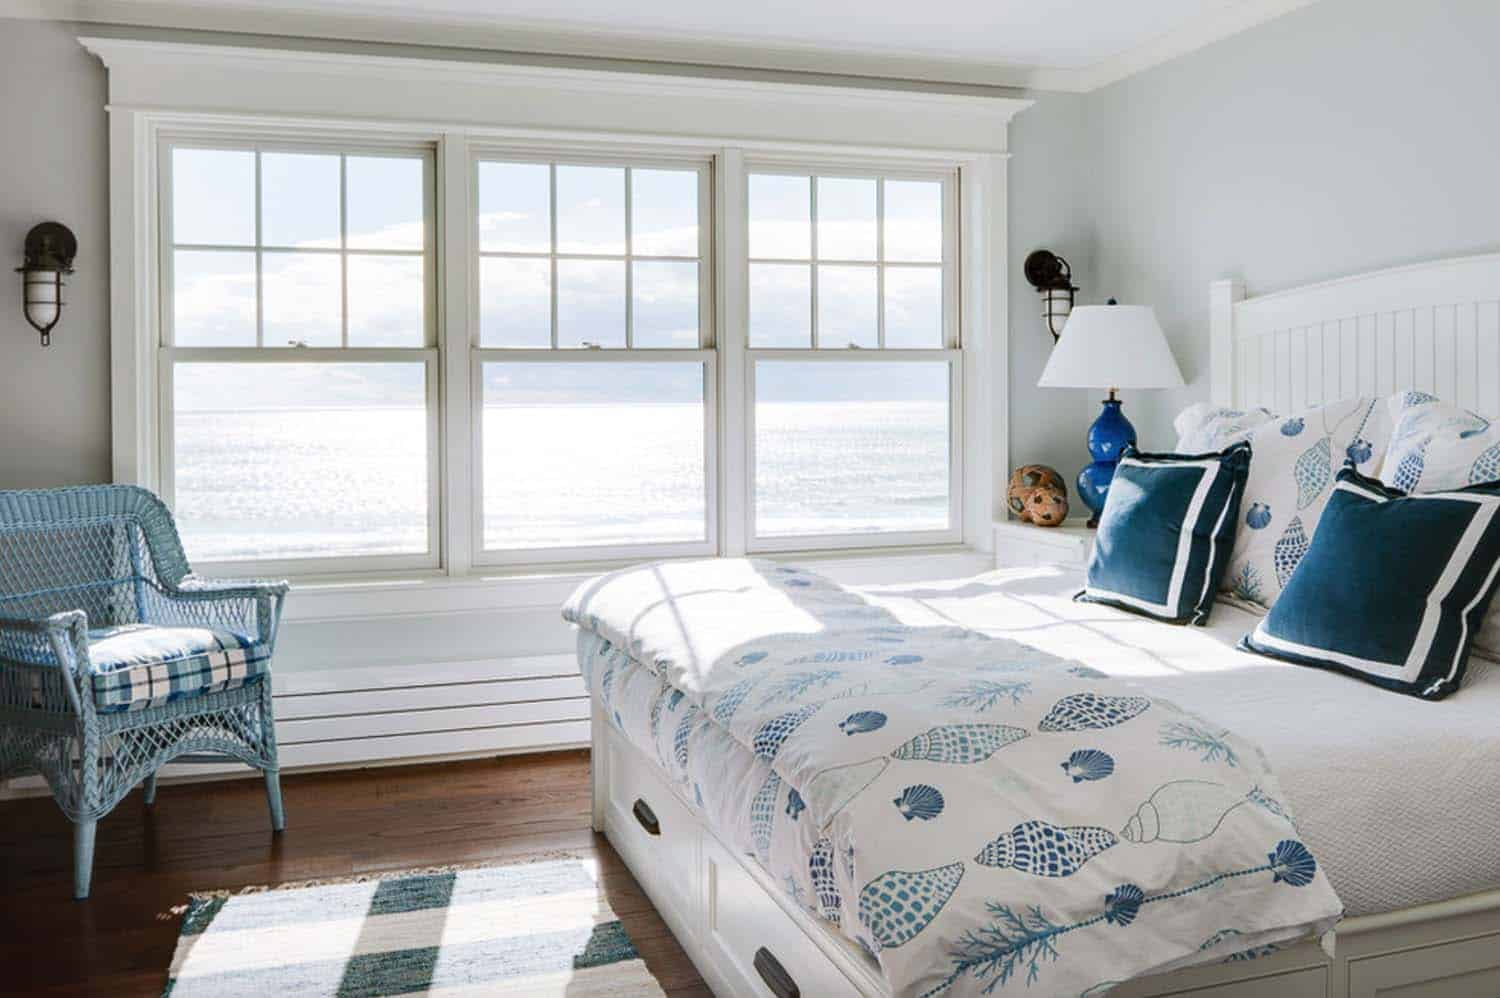 New england bedroom ideas wow new england bedroom ideas concerning dreamy seaside home in maine with new england style architecture sisterspd